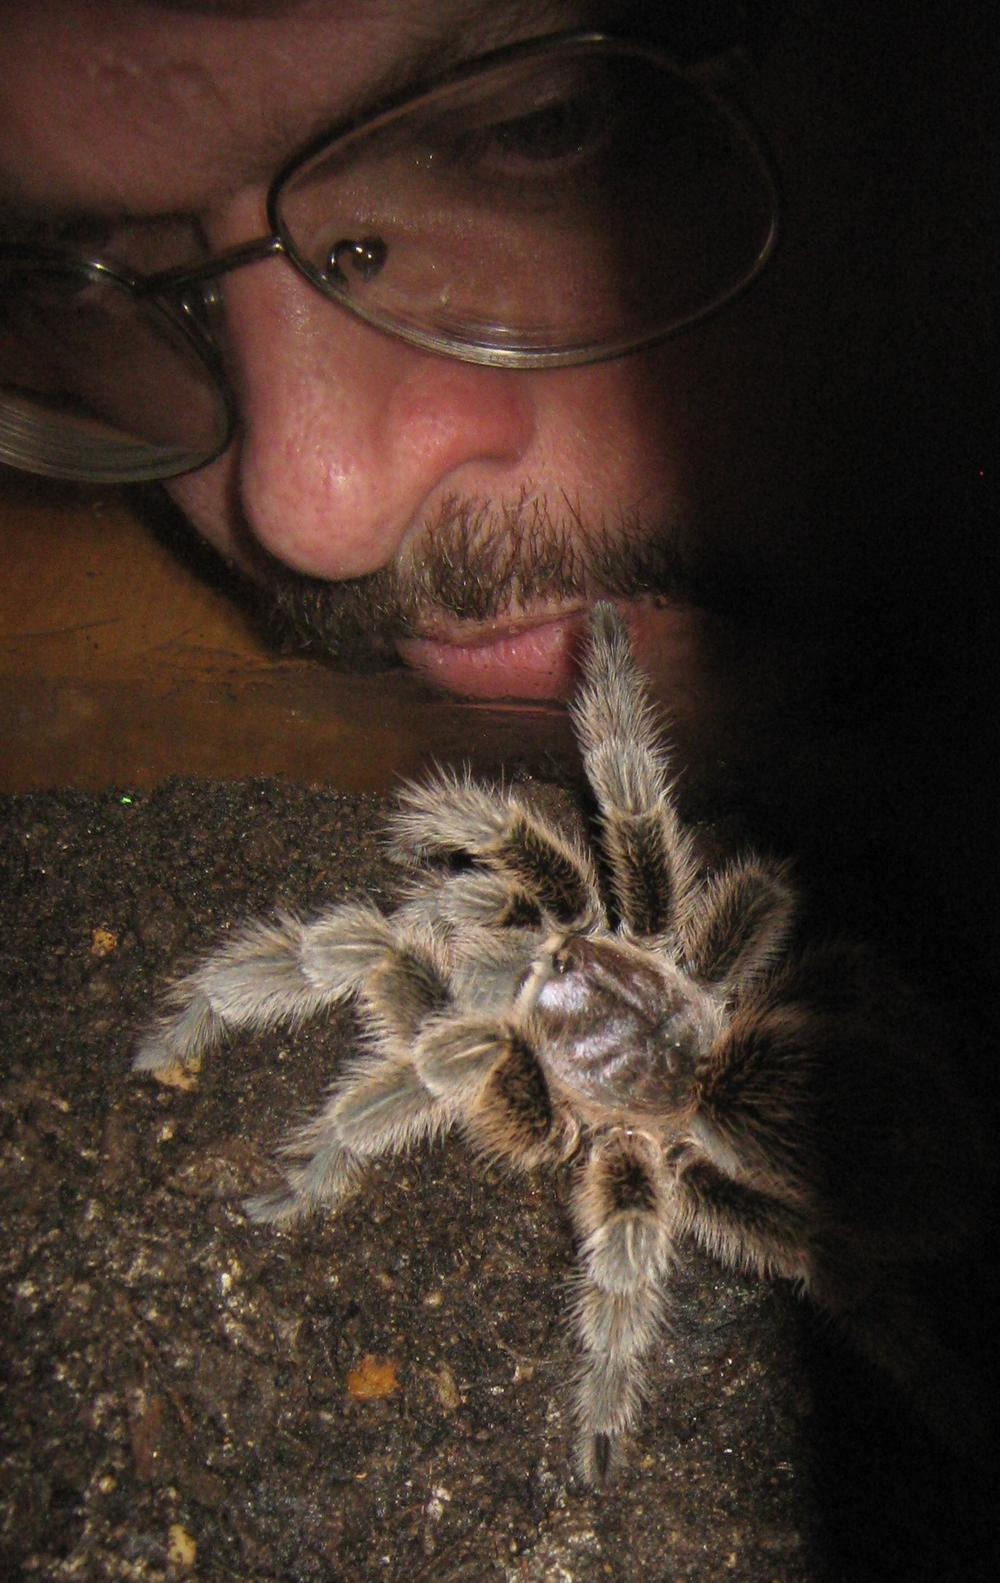 Author Grice gets up close and personal with a Tarantula. (Random House)